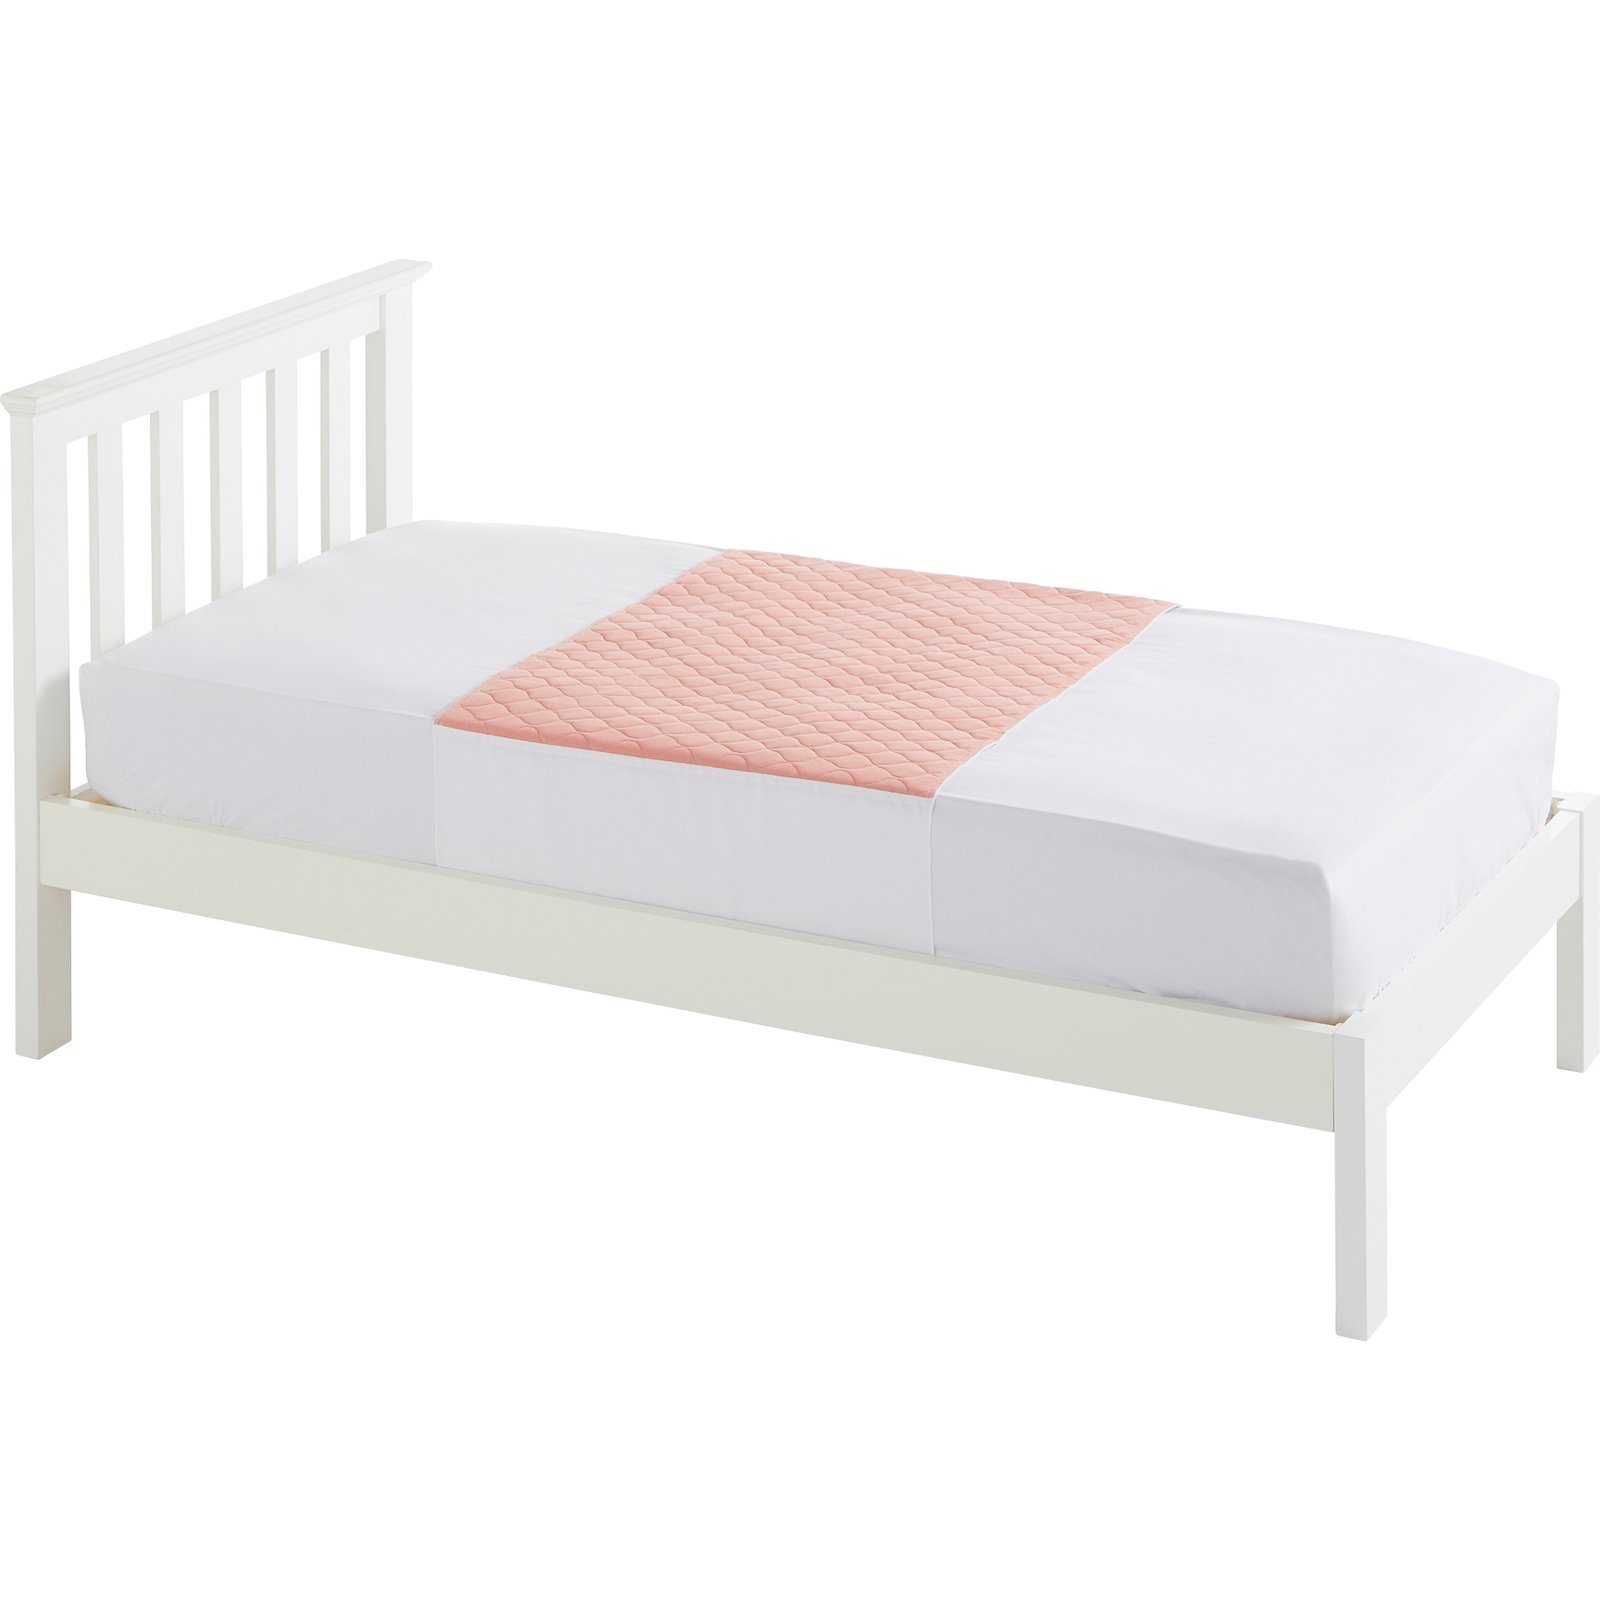 Single Bed 91x74cm Pink